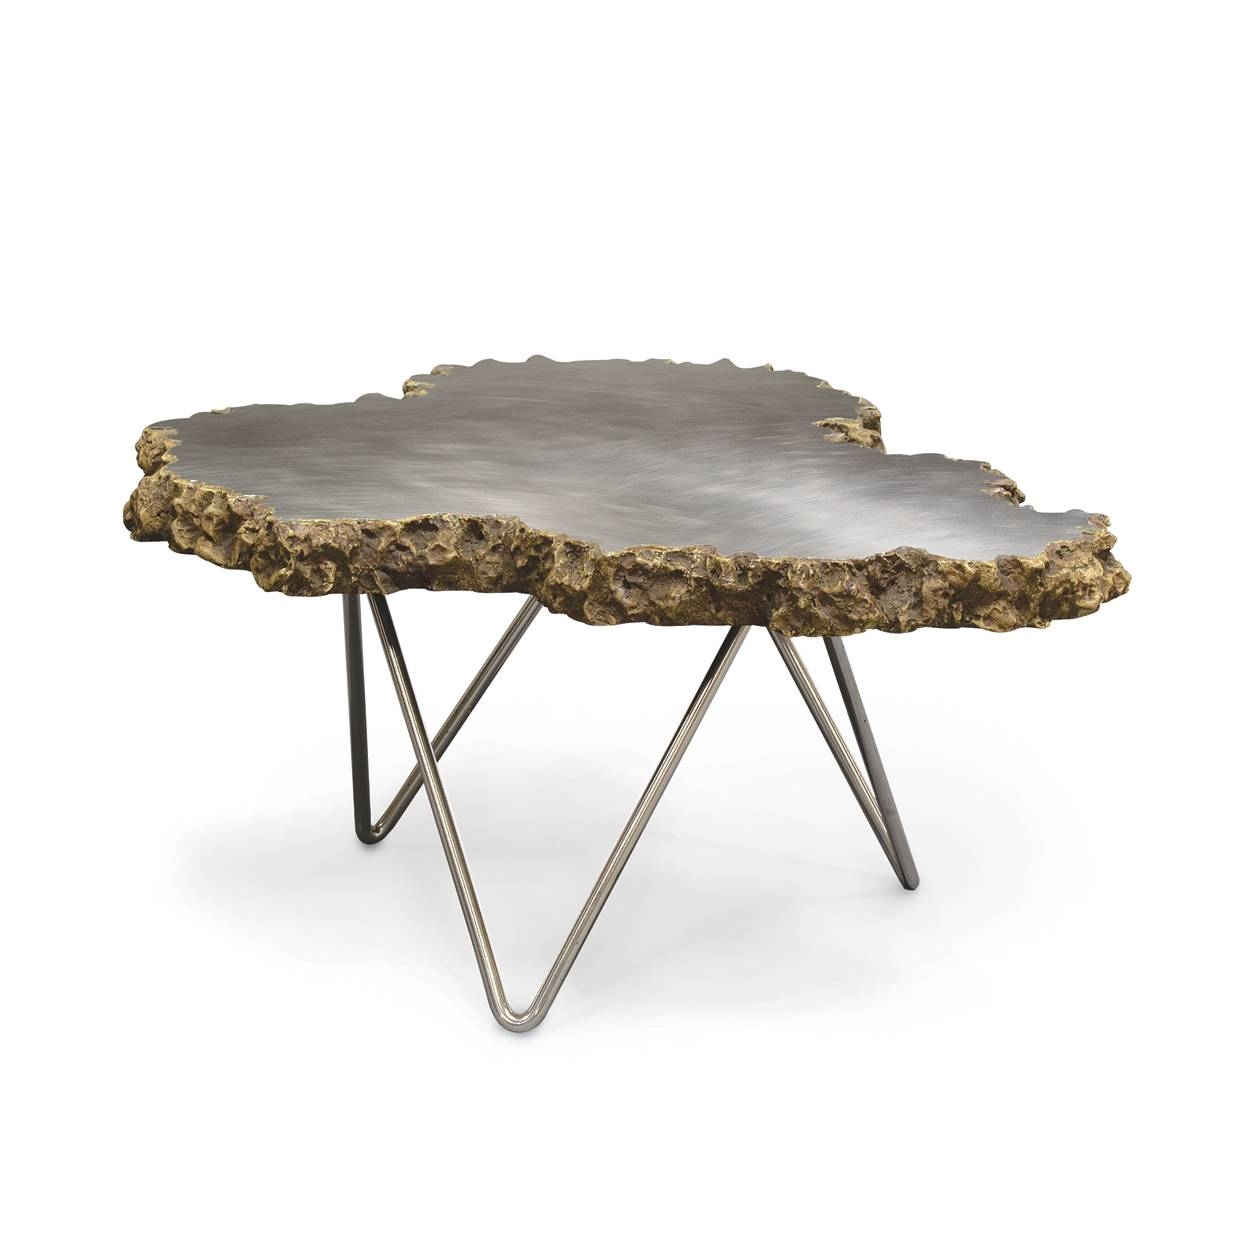 Small Stainless Steel And Lava Stone Coffee Table - Mecox Gardens throughout Stone Coffee Table (Image 10 of 15)